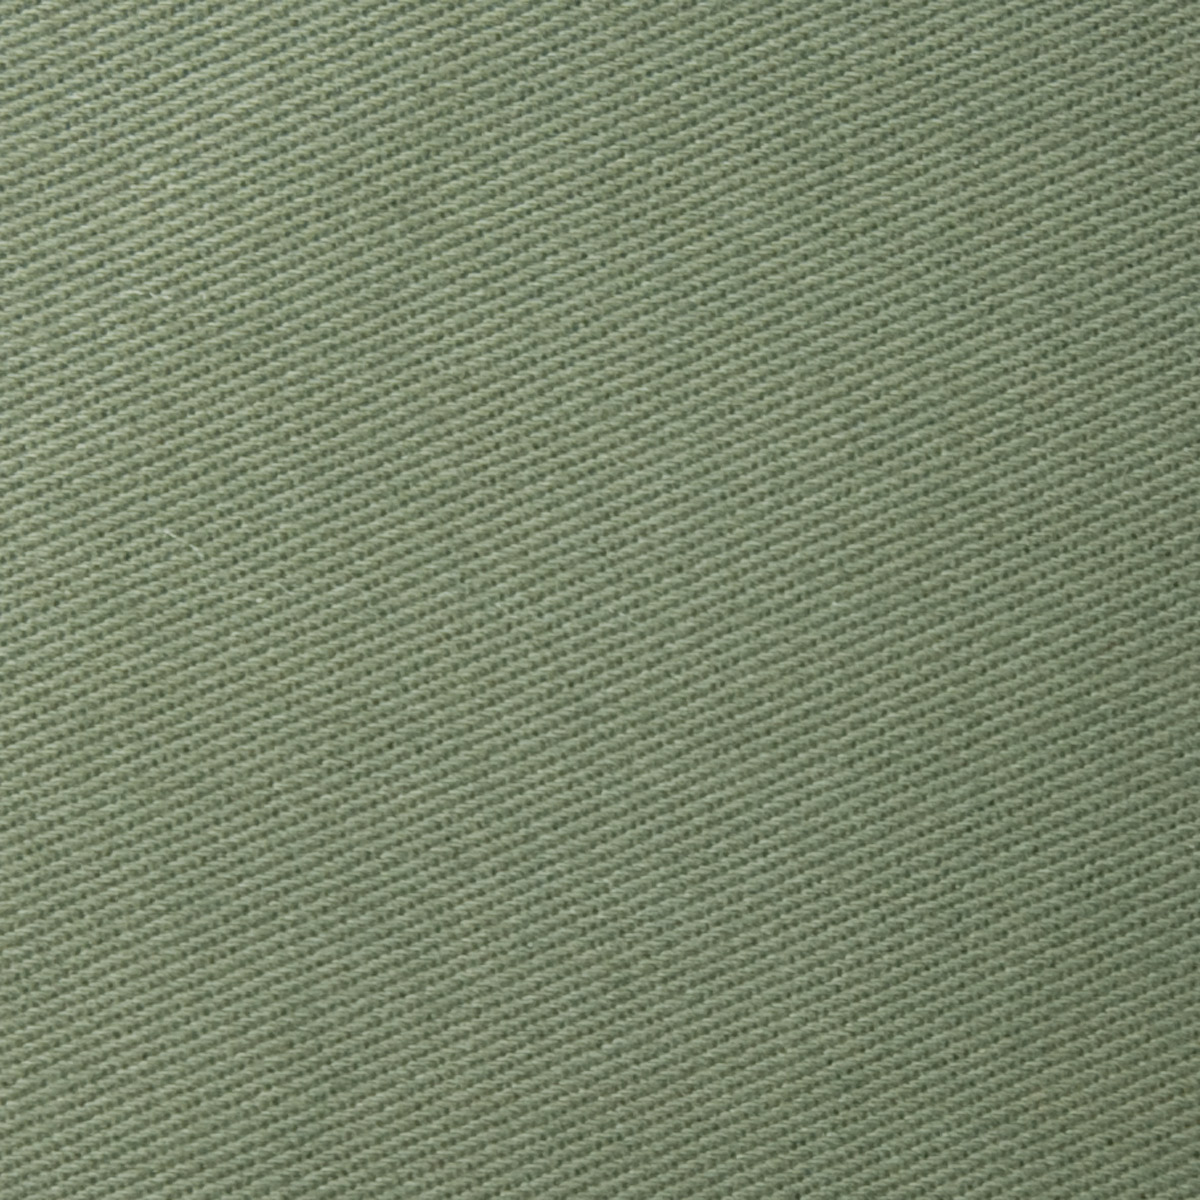 Buy tailor made shirts online - Lightweight Cotton Leisure Cloth - Olive with lining